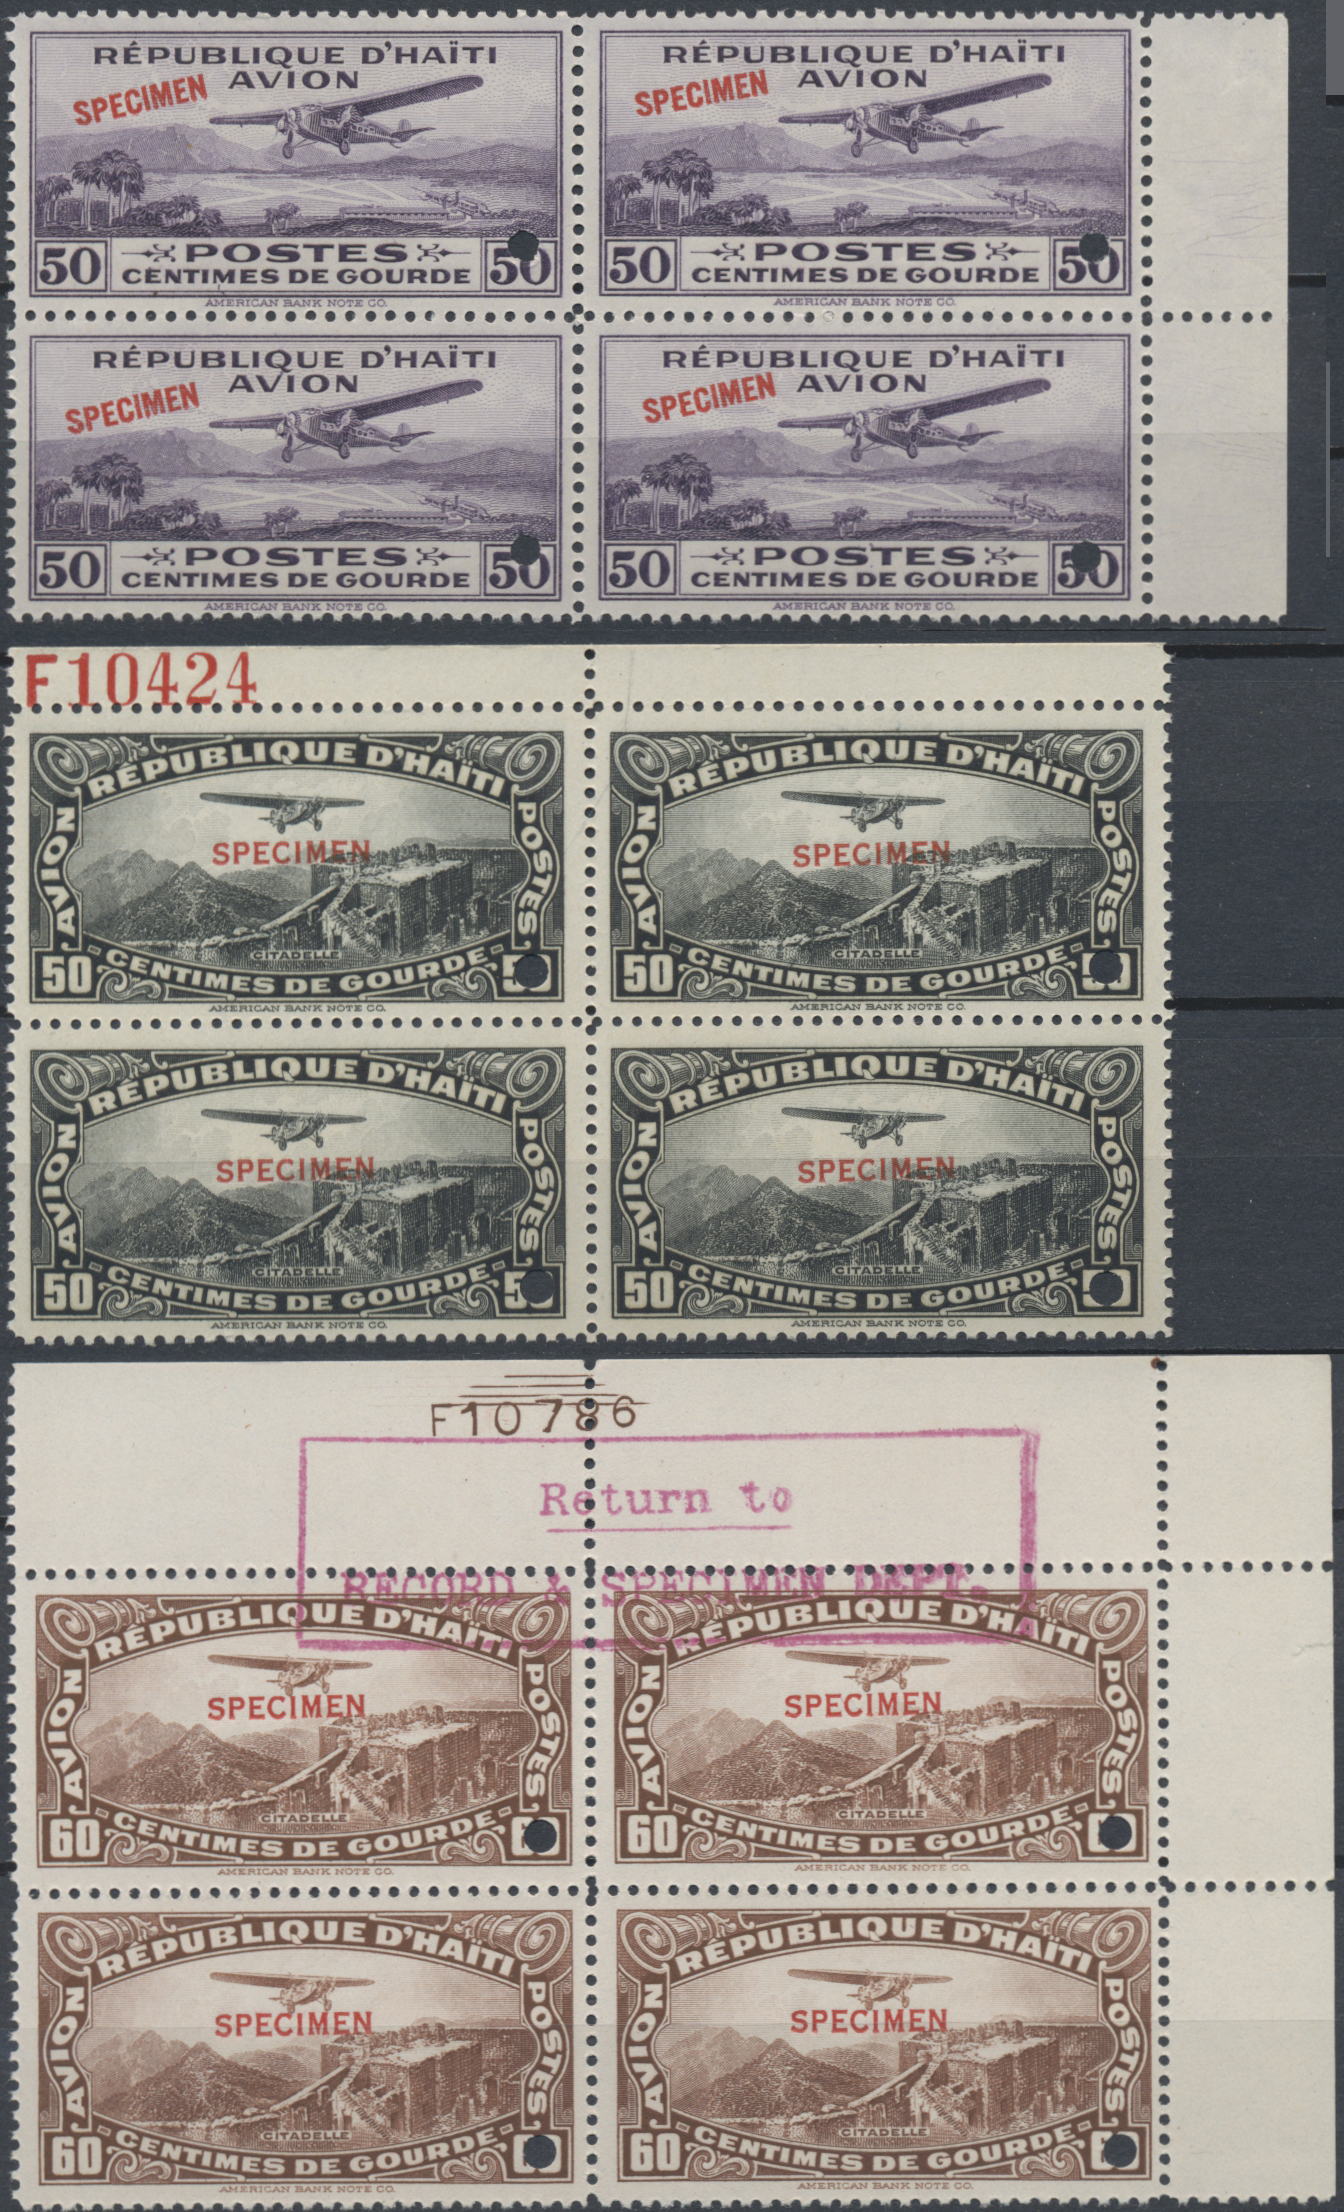 Lot 13400 - haiti  -  Auktionshaus Christoph Gärtner GmbH & Co. KG Sale #48 collections Overseas  Airmail / Ship mail & Thematics